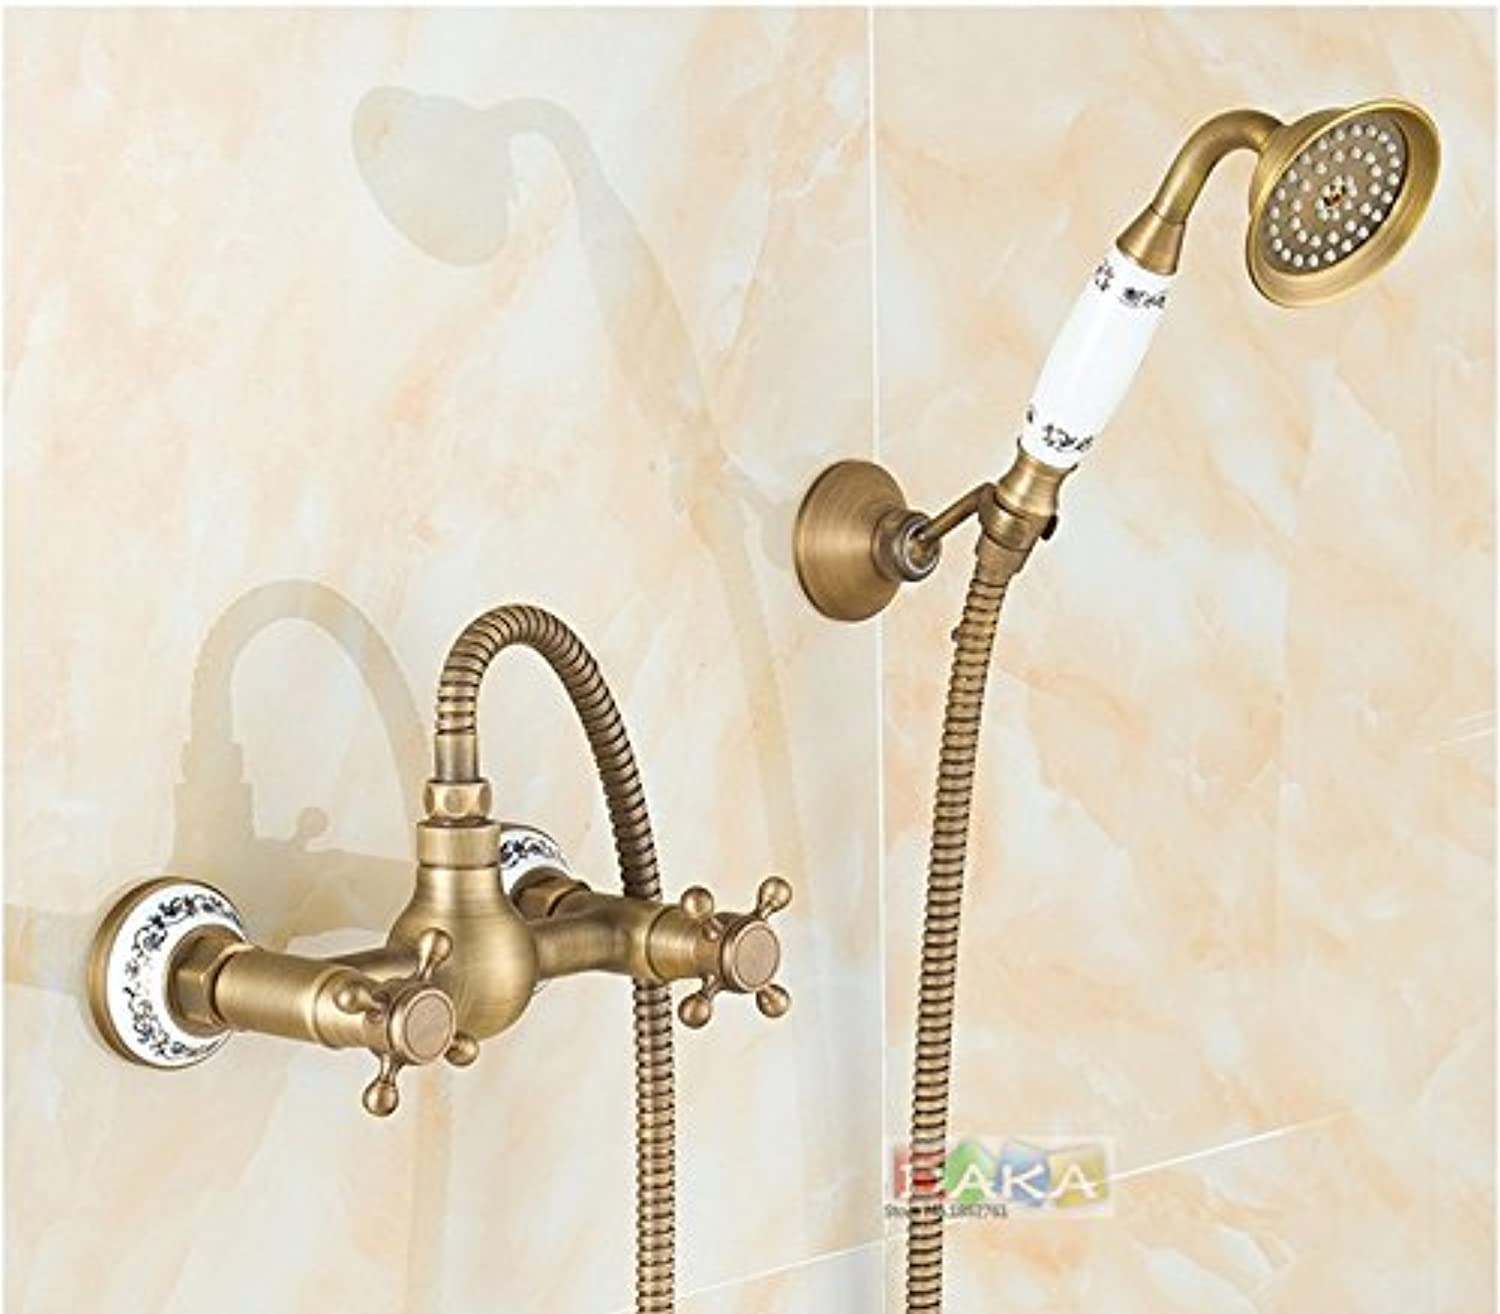 Vintage Antique Brass Design Bathroom Shower Faucet Set Wall Mounted Luxury Ceramics Shower Dual Handle Bath Tub Mixer Tap,Light Yellow